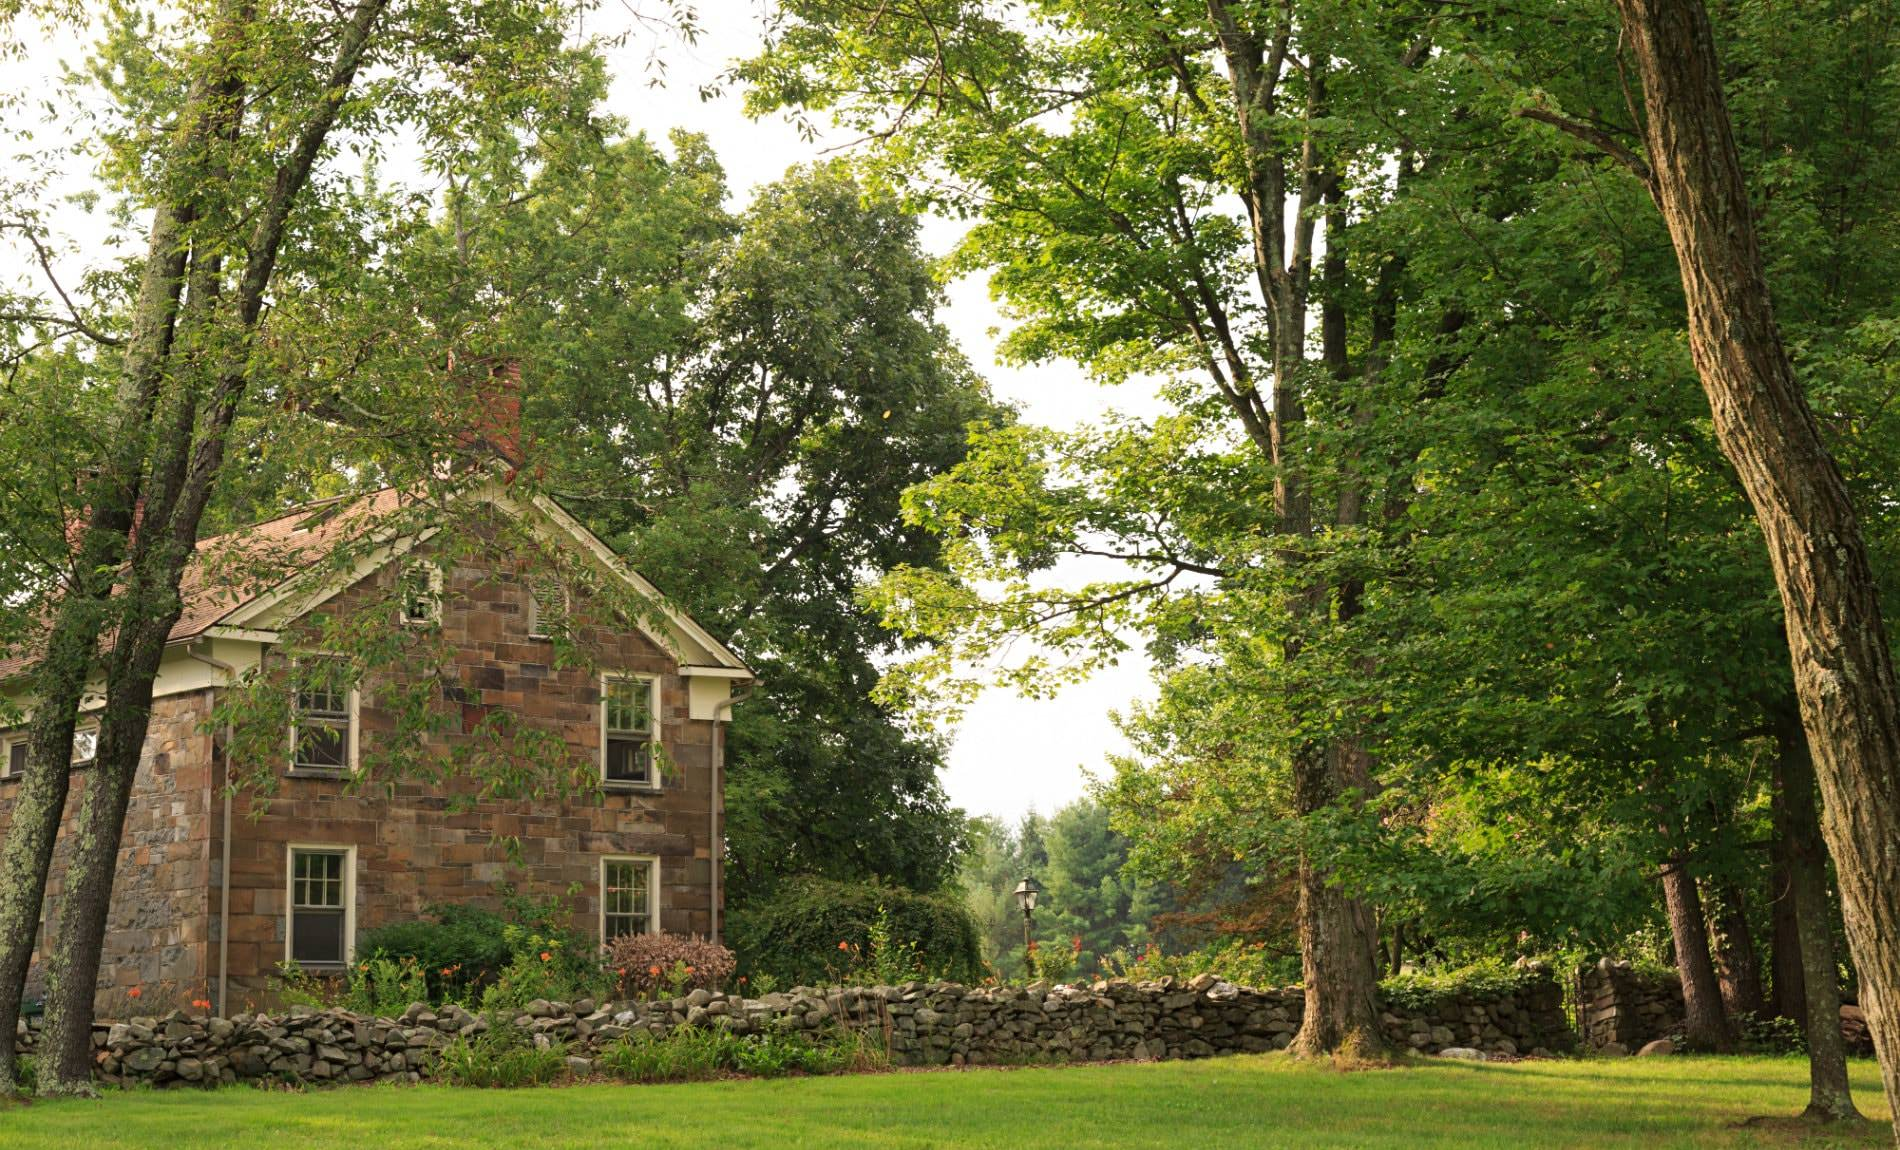 Brown stone building and stone wall running along property surrounded by green grass and trees